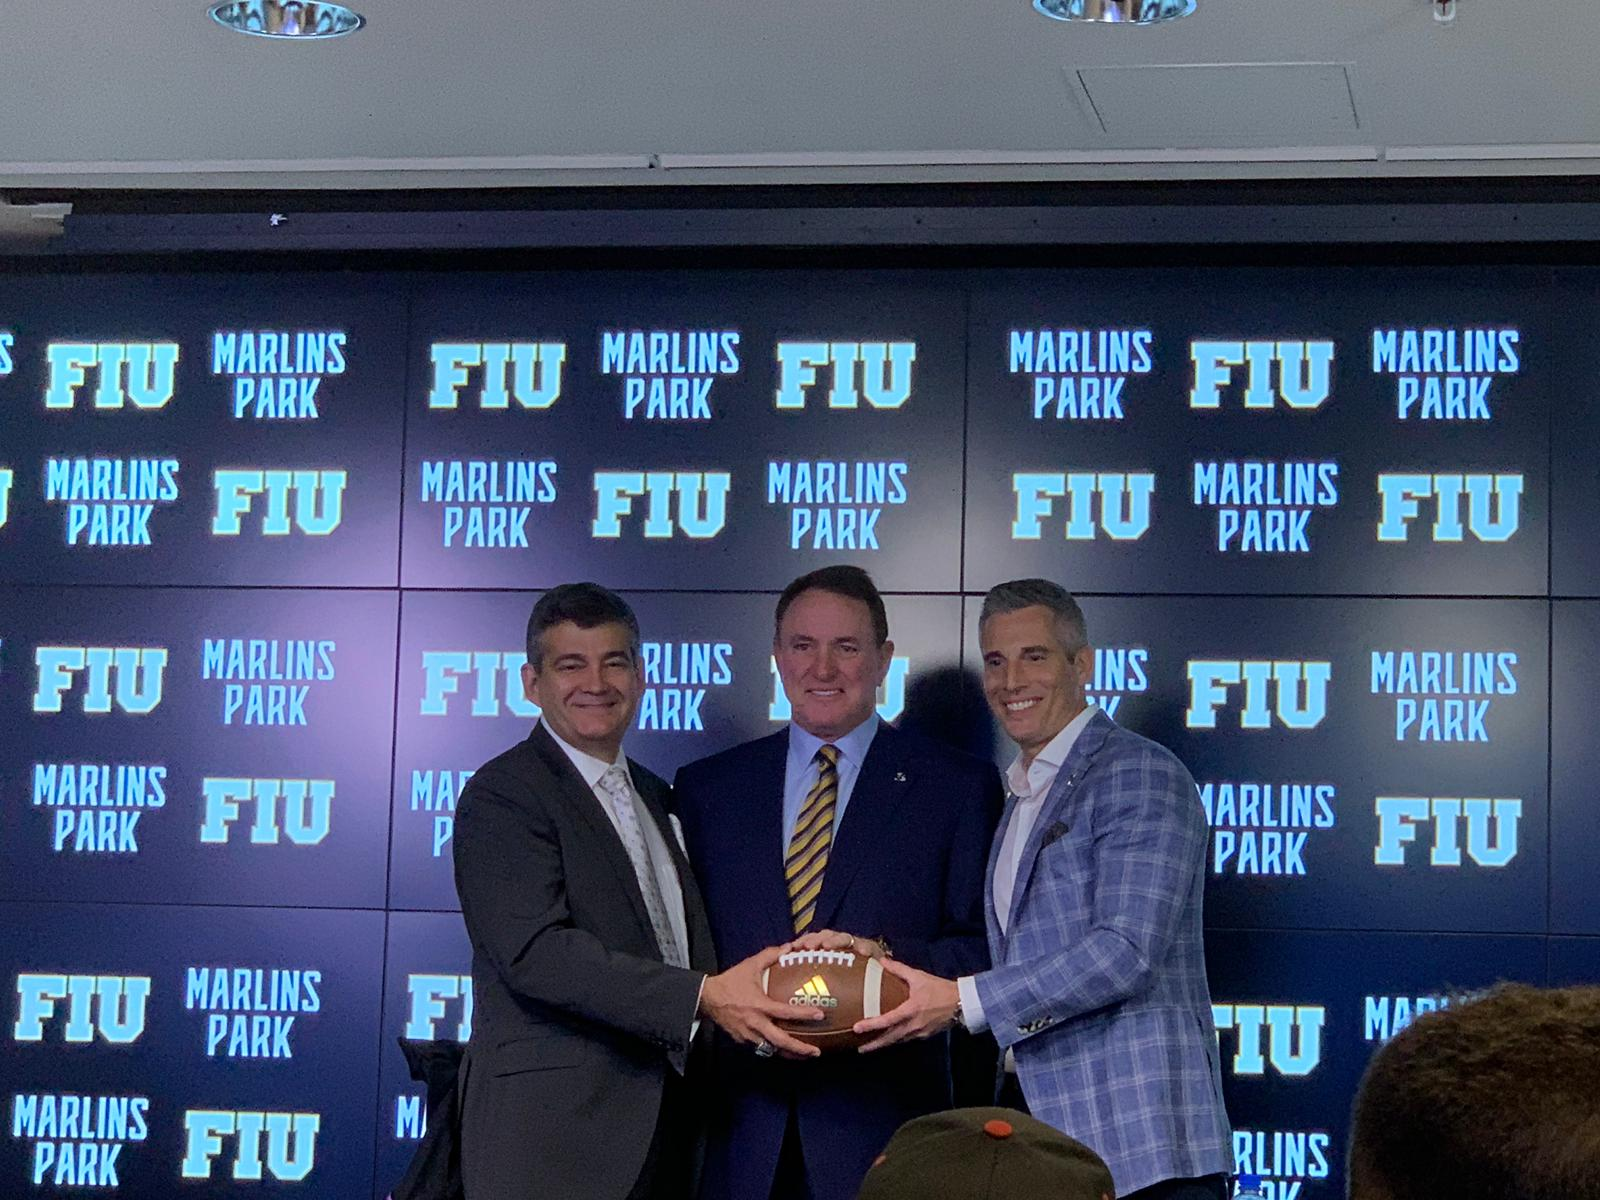 a00d1e288ab Marlins Park welcomes back football with FIU vs UM 2019 Orange Bowl -  PantherNOW